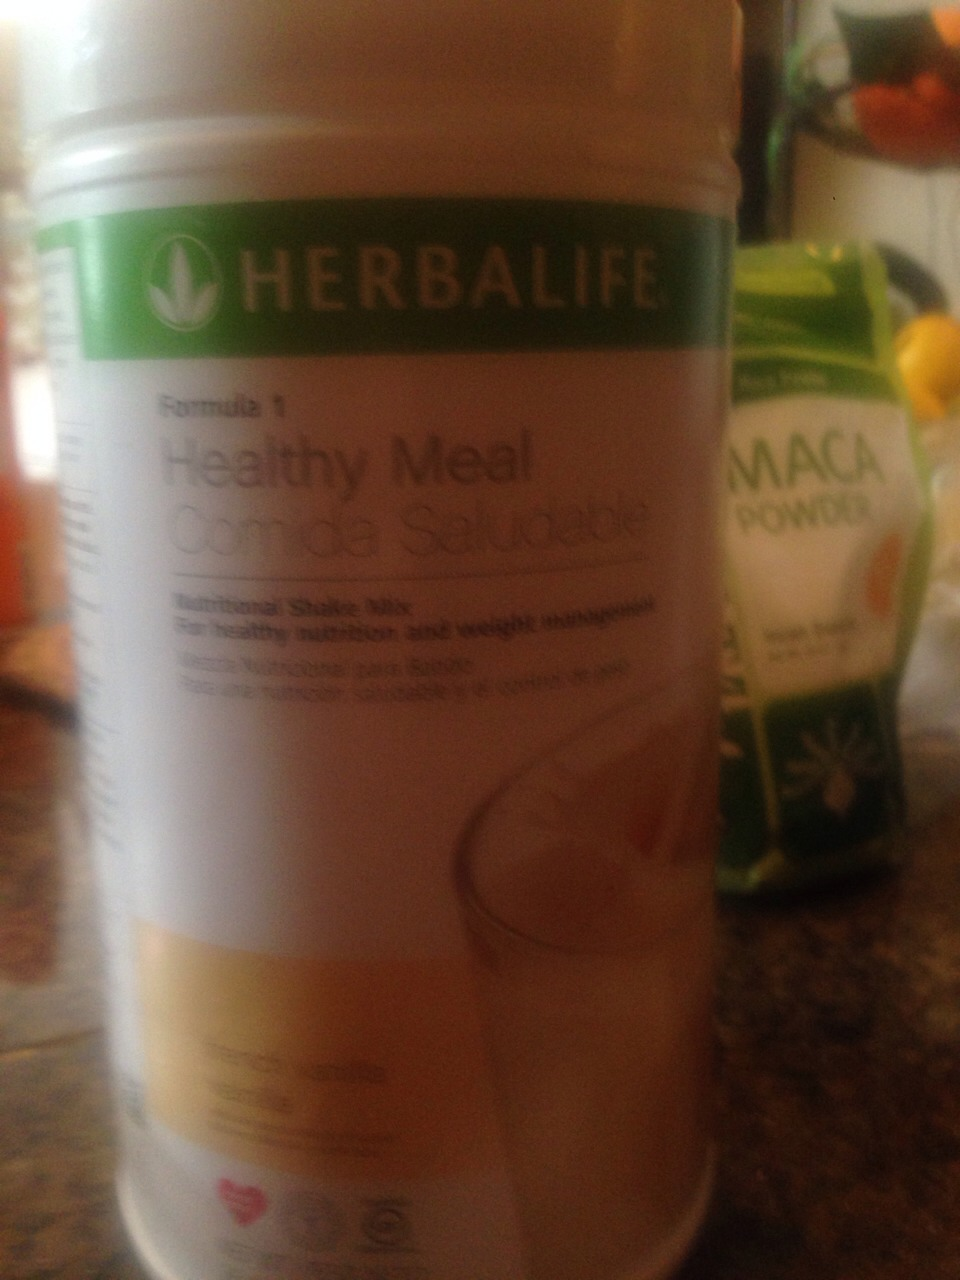 Two scoops of herbalife meal replacement